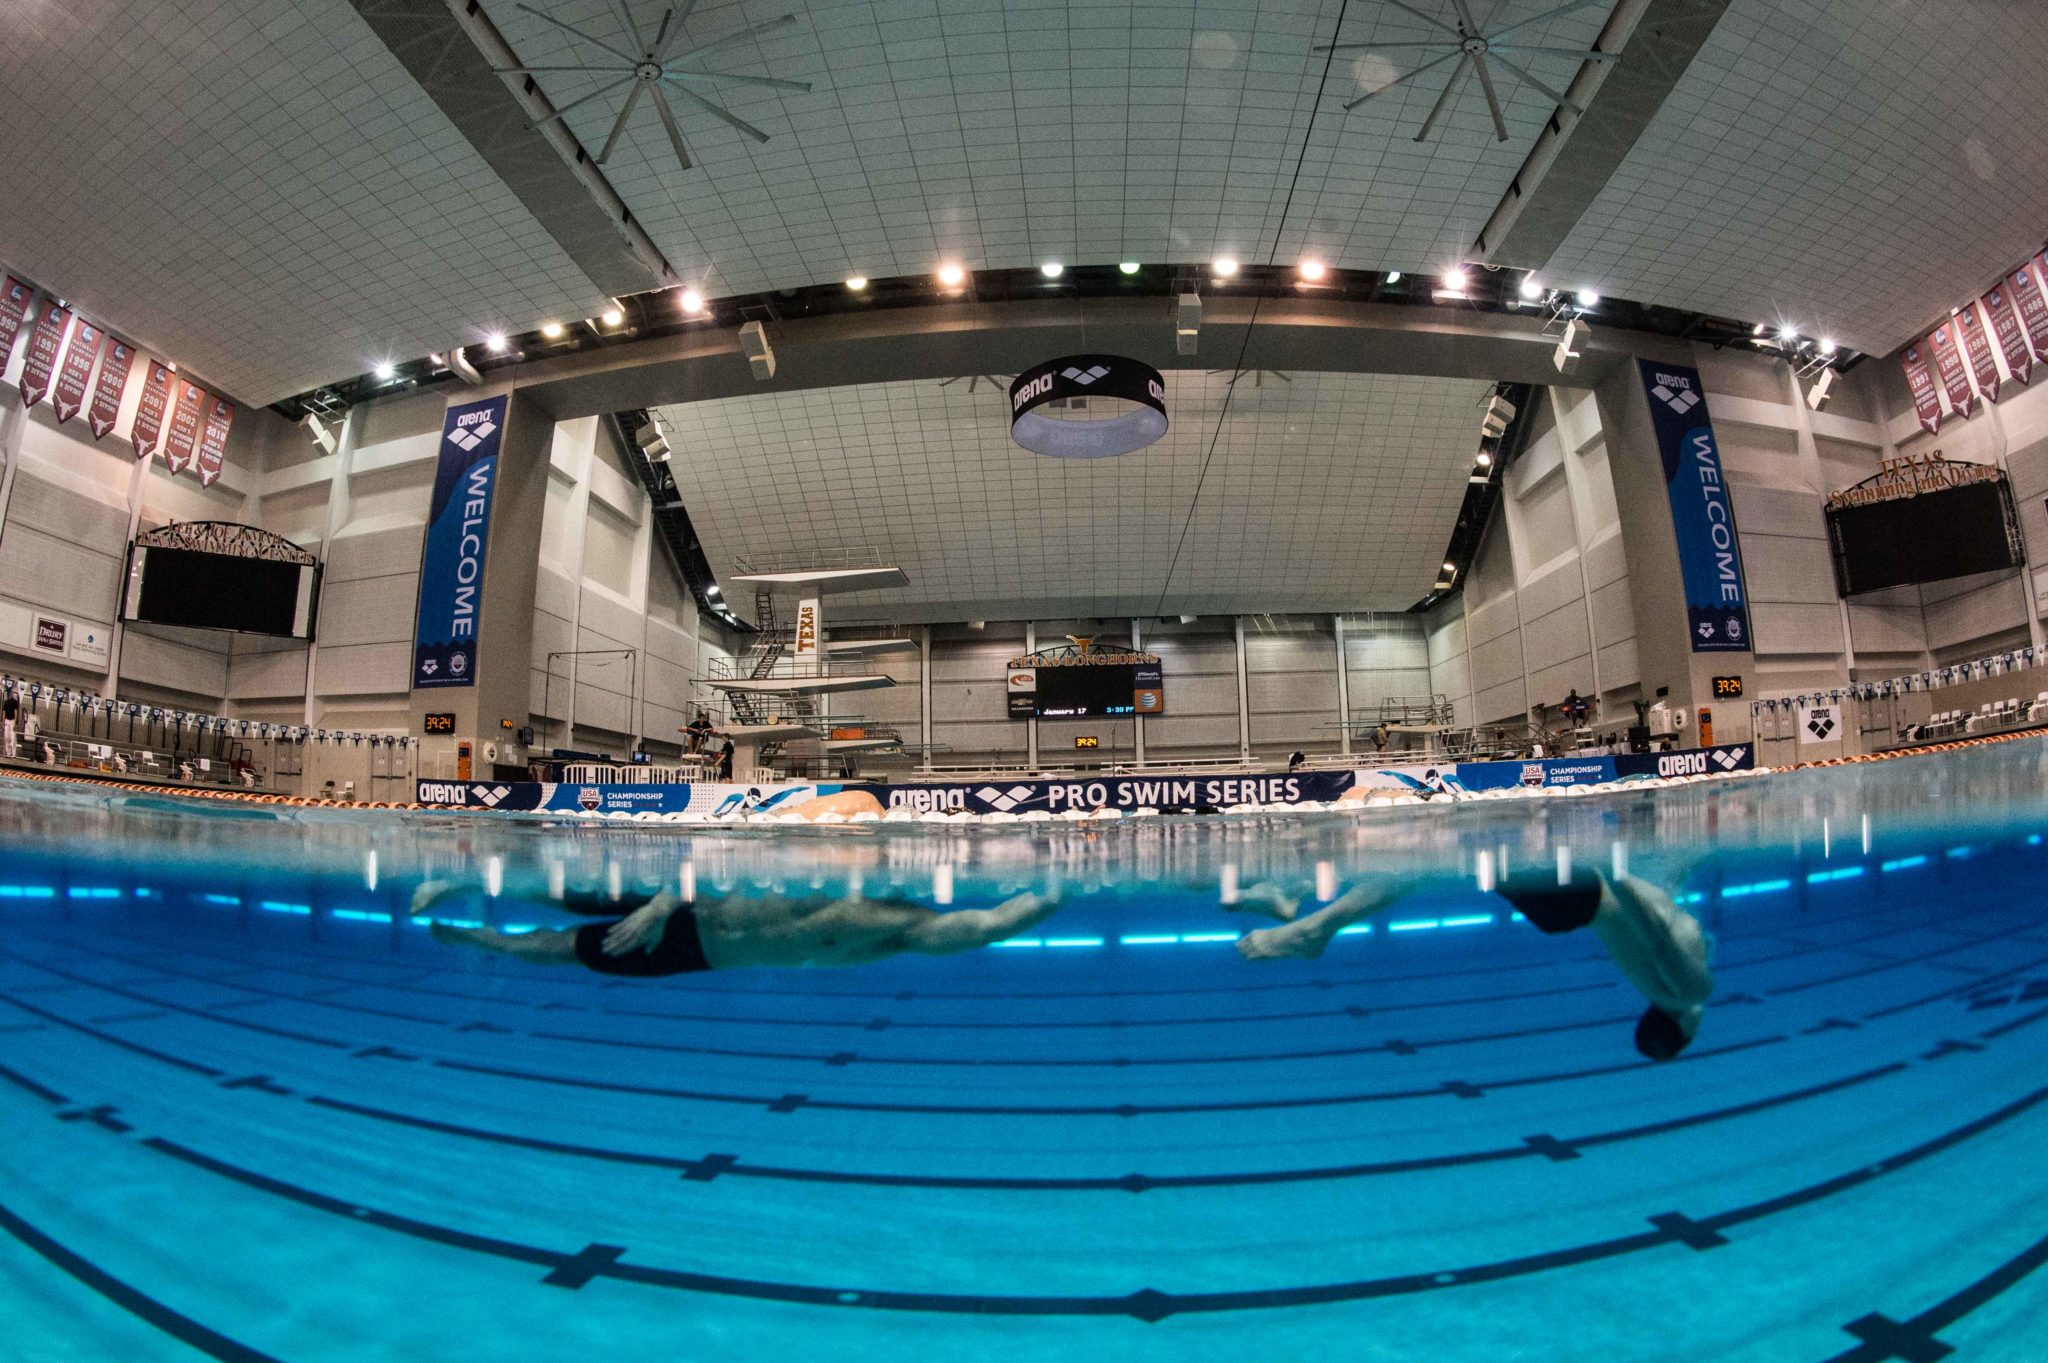 University of Texas to Build New Outdoor Pool Facility